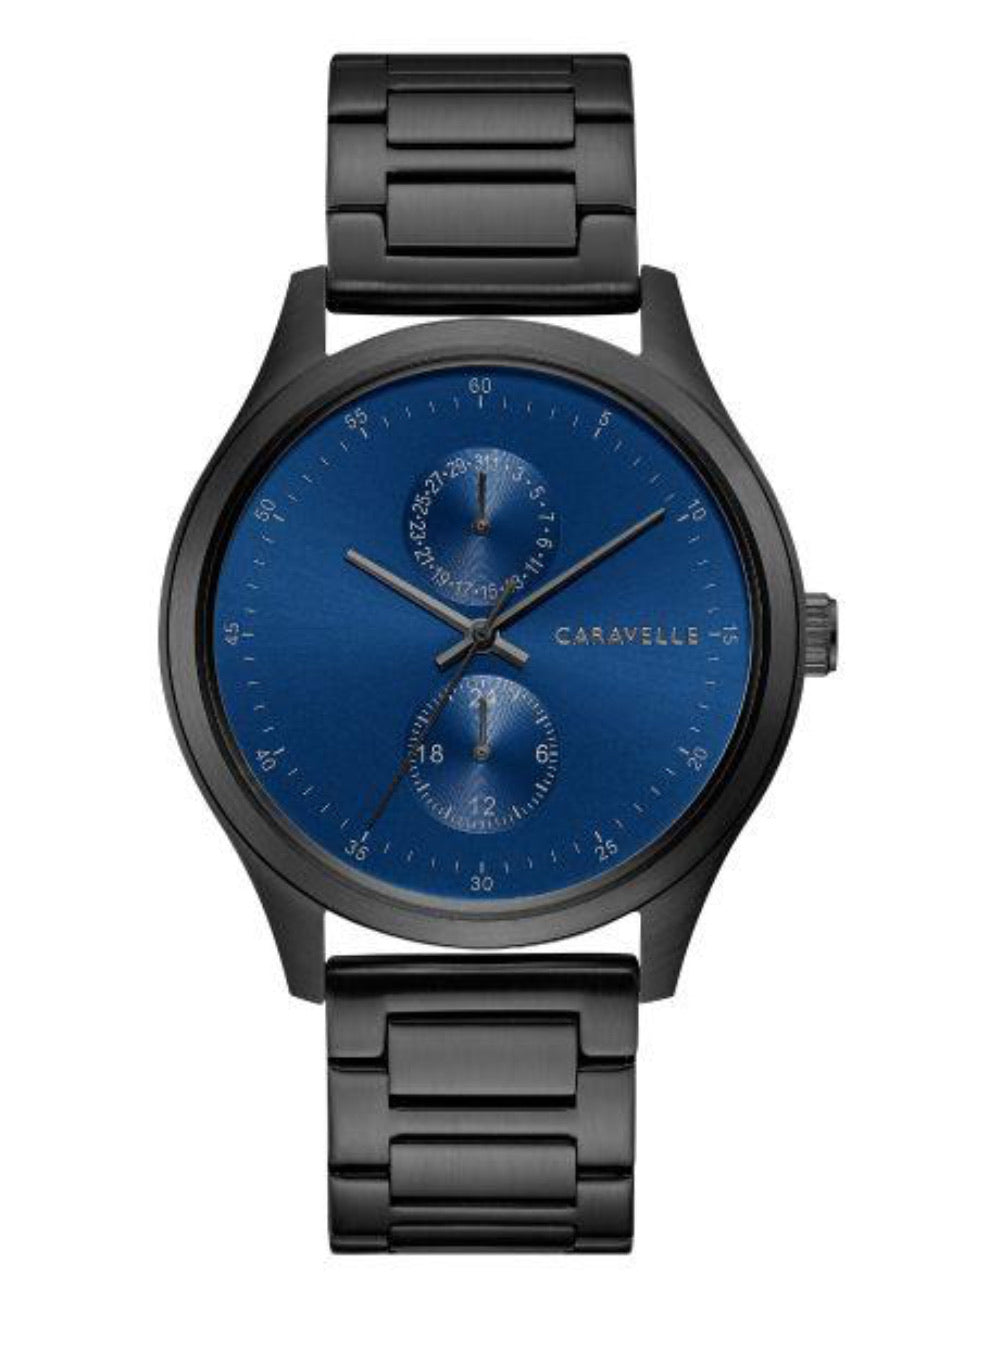 Men's Black & Blue Caravelle Watch